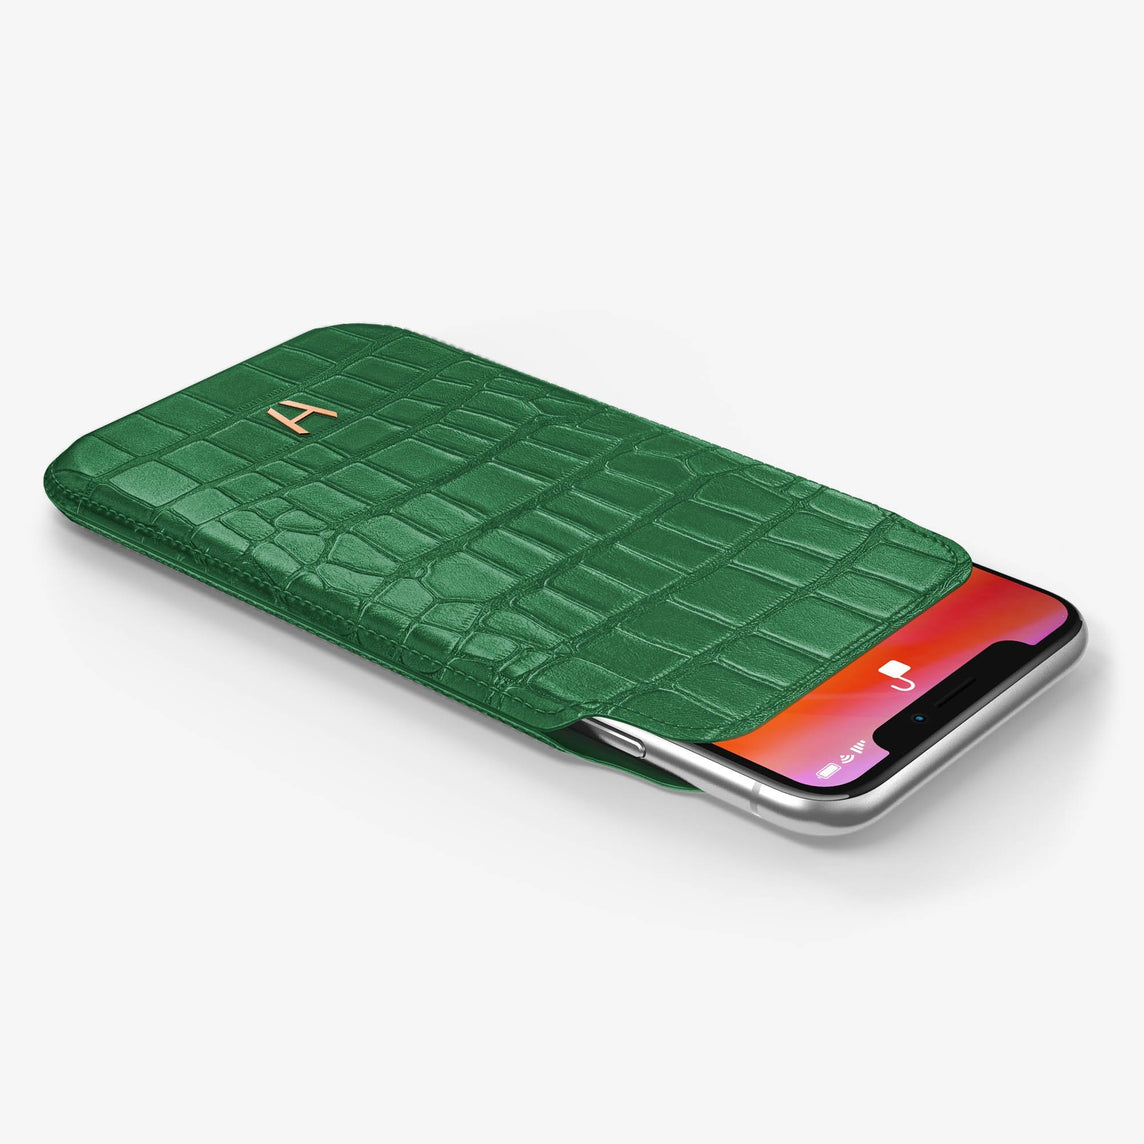 Alligator [iPhone Sleeve Case] [model:iphone-xr-case] [colour:green] [finishing:rose-gold]